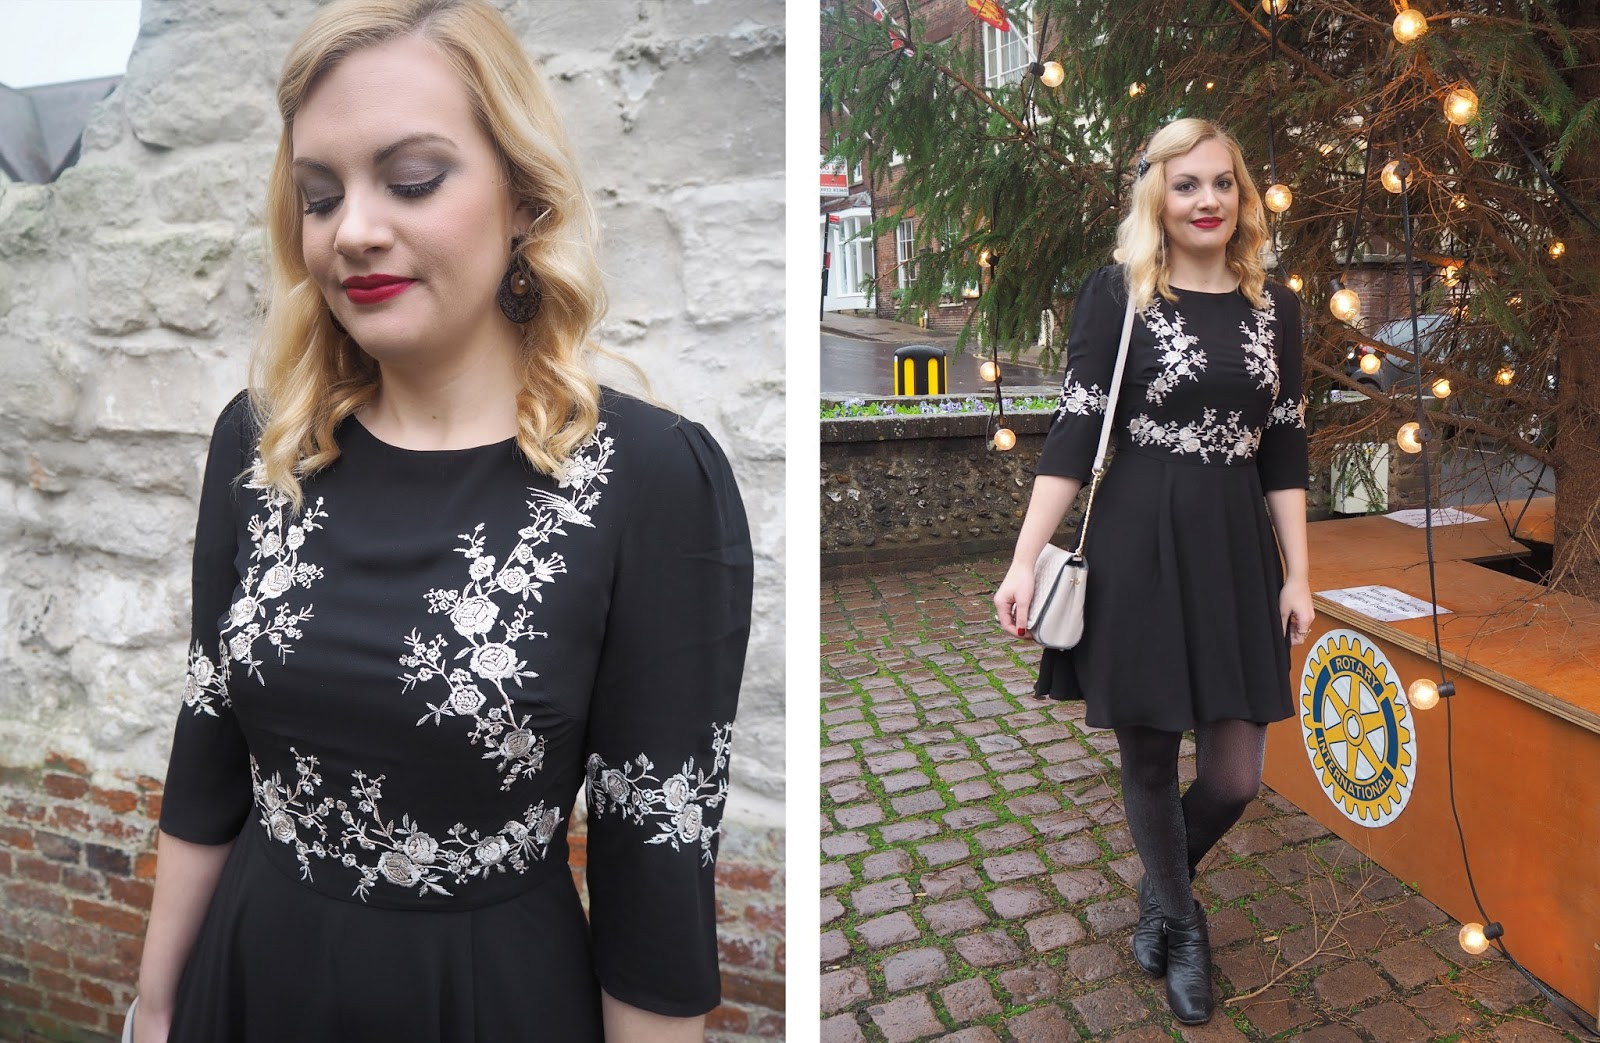 New Years Eve Outfit Ideas, Party Season, Outfit Ideas, Katie Kirk Loves, New Years Eve, Oasis Fashion, Fashion Blogger, UK Fashion Blogger, Outfit Of The Day, Style Blogger, Outfit Photoshoot, UK Blogger, Party Dresses, Party Outfit Inspiration